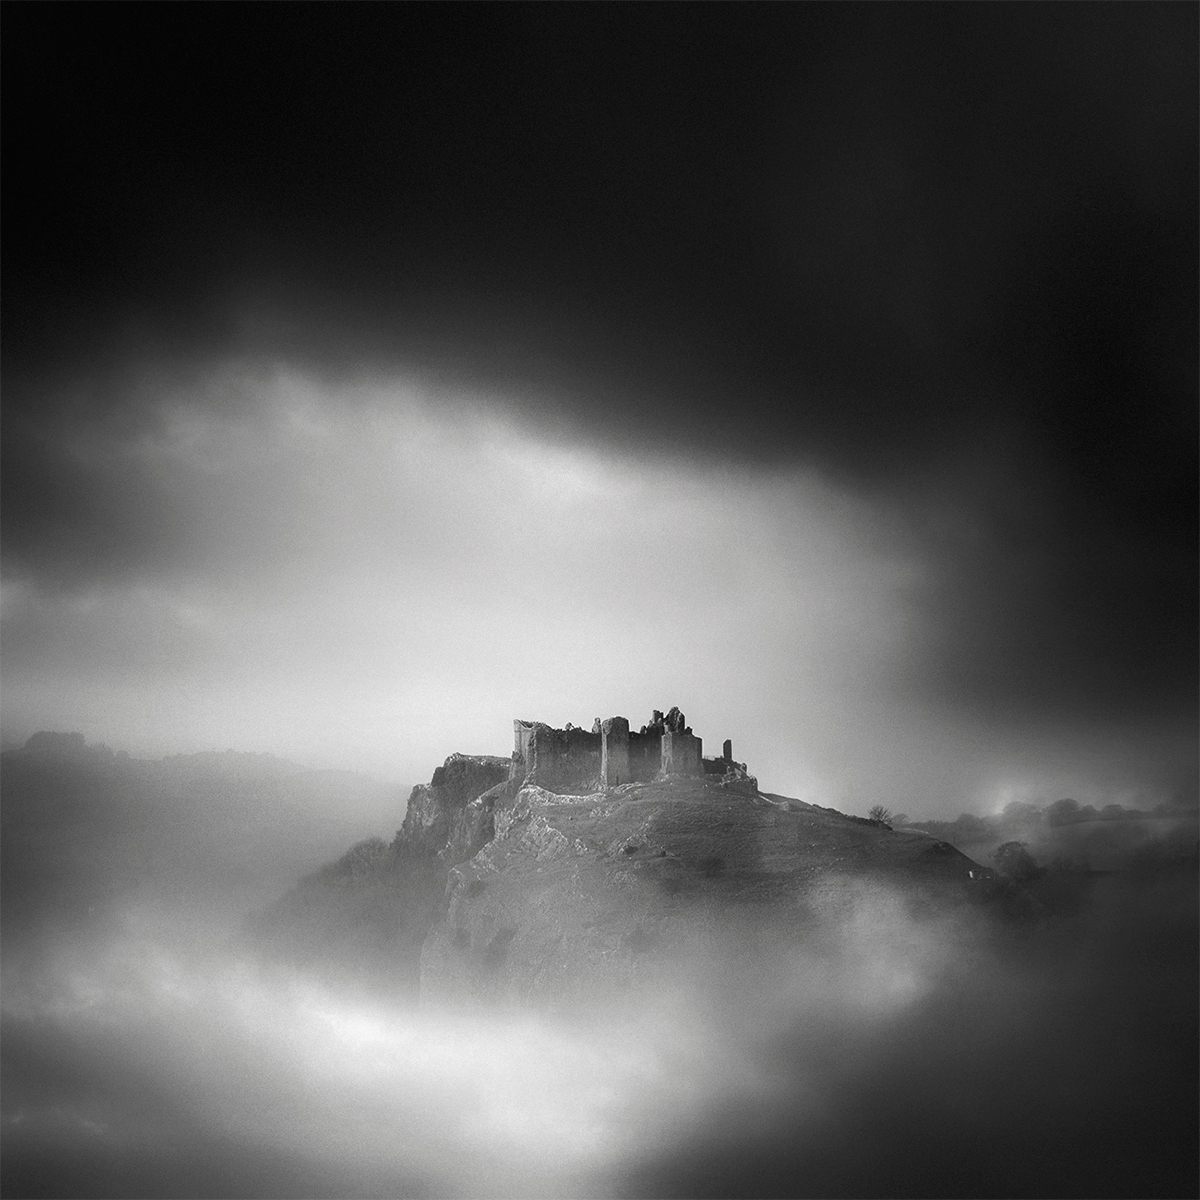 Castillos de Arena - Andy Lee - 1